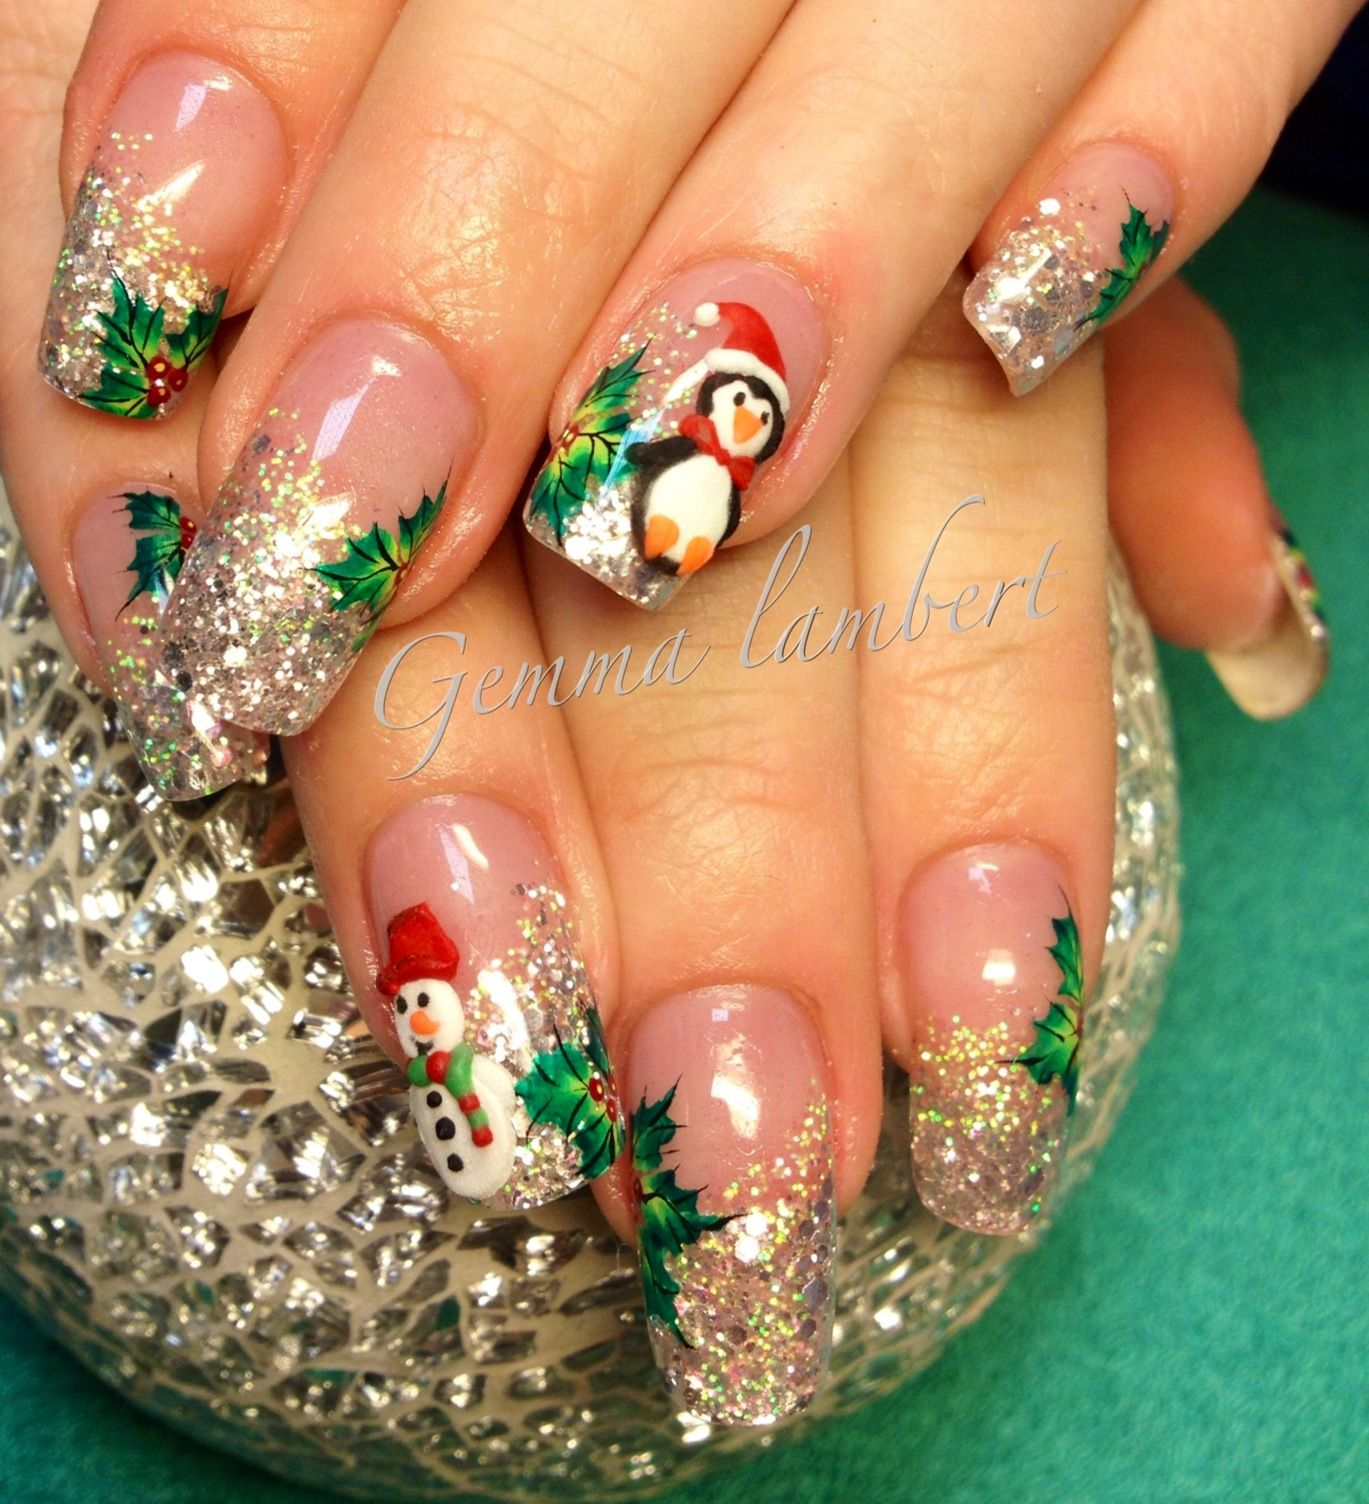 Christmas Nails With Glitter: Christmas Nail Designs, Christmas Nails